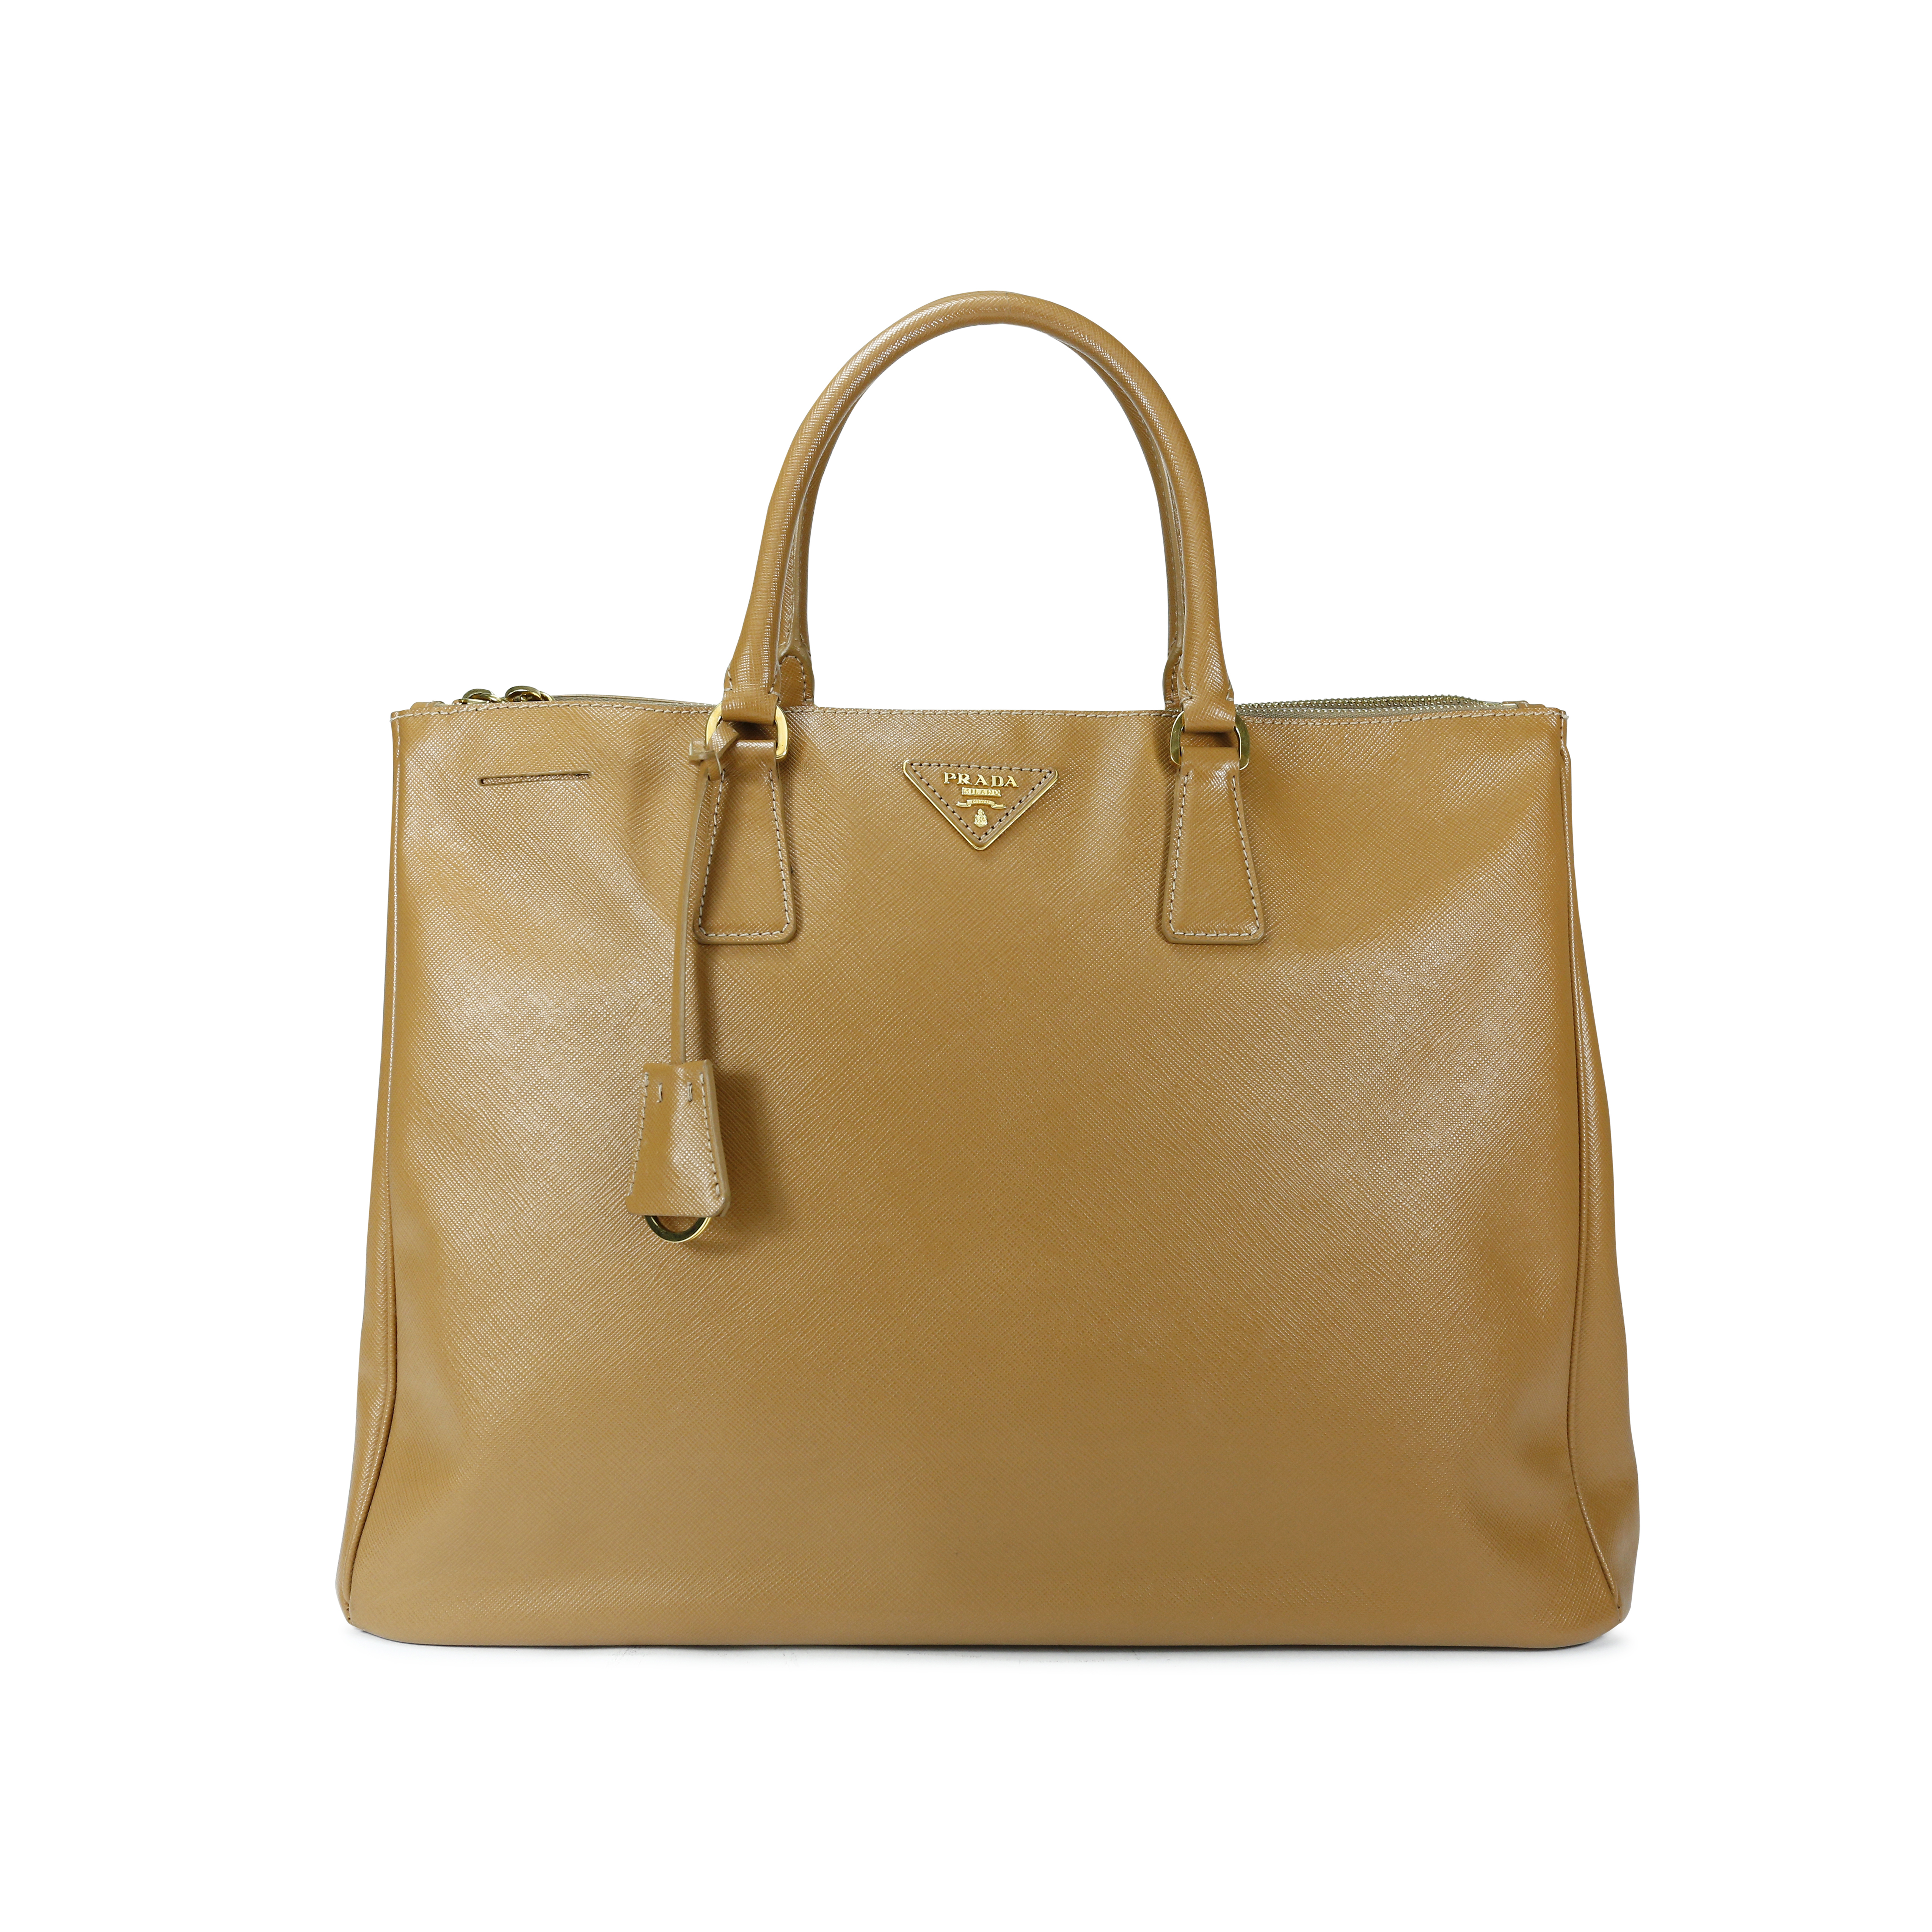 34ccbce2a82005 Authentic Second Hand Prada Saffiano Lux Double Zip Tote (PSS-143-00009) |  THE FIFTH COLLECTION